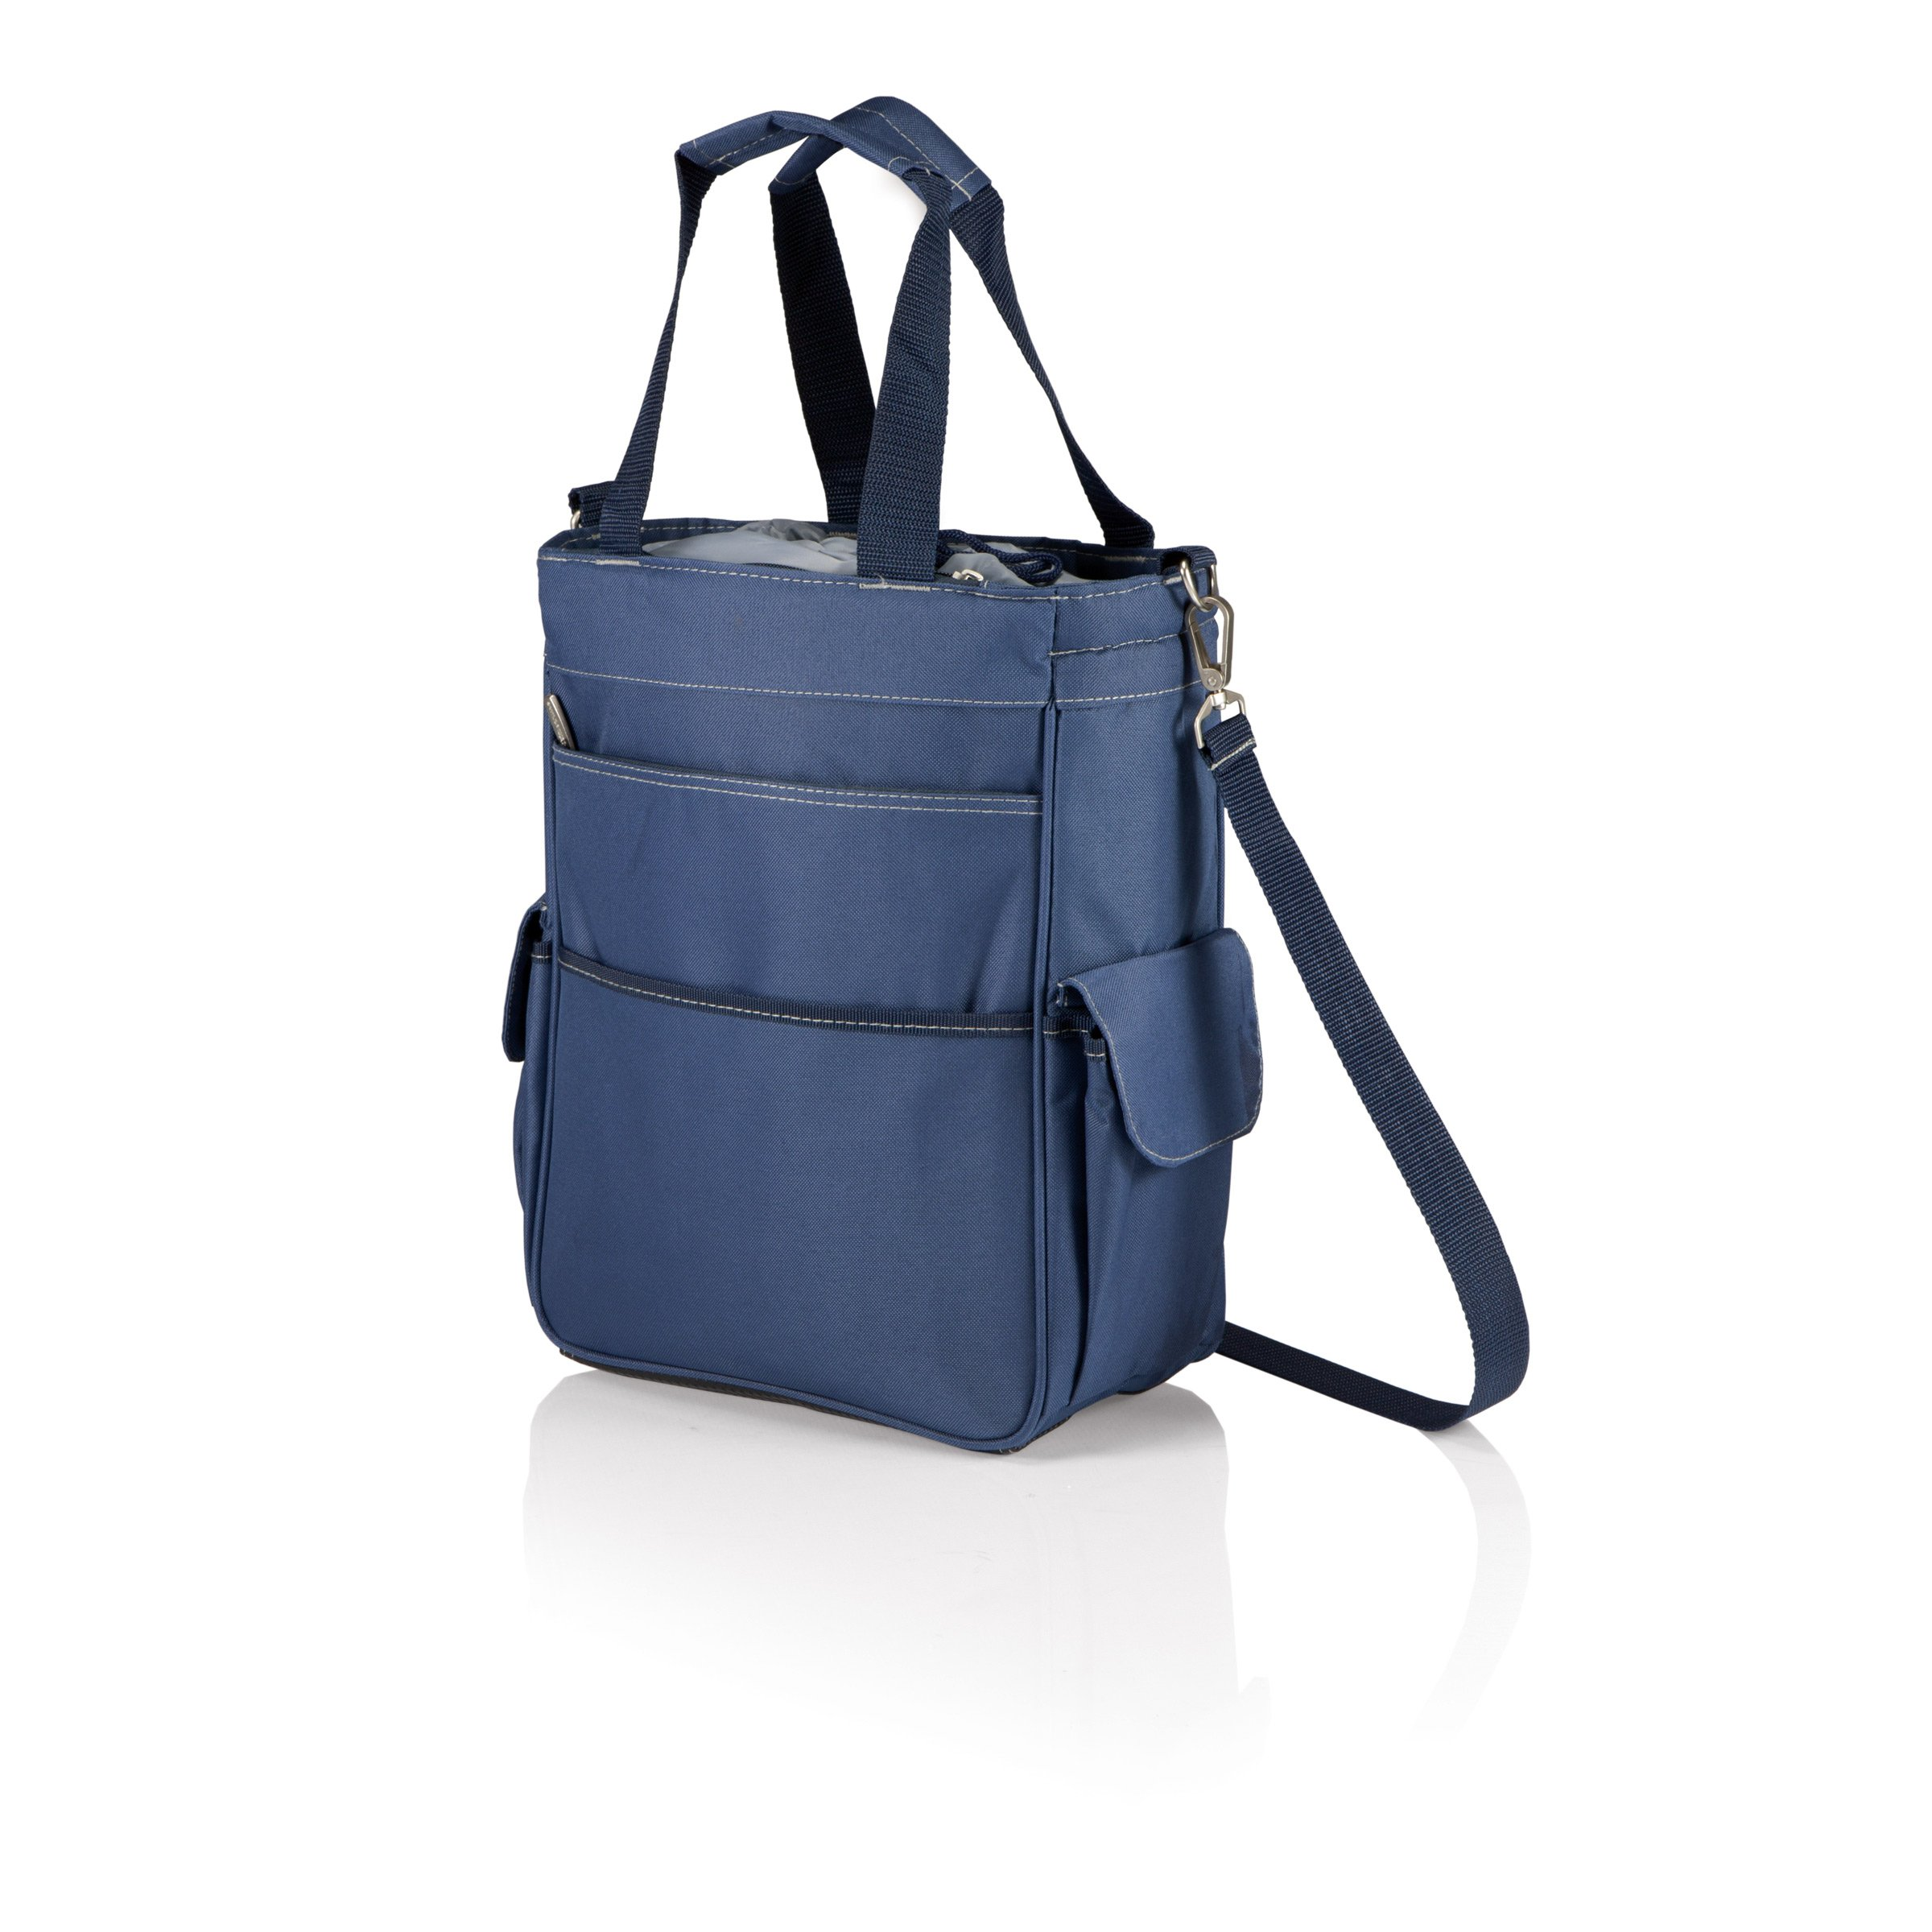 Picnic Time 'Activo' Cooler Tote with Waterprrof Lining